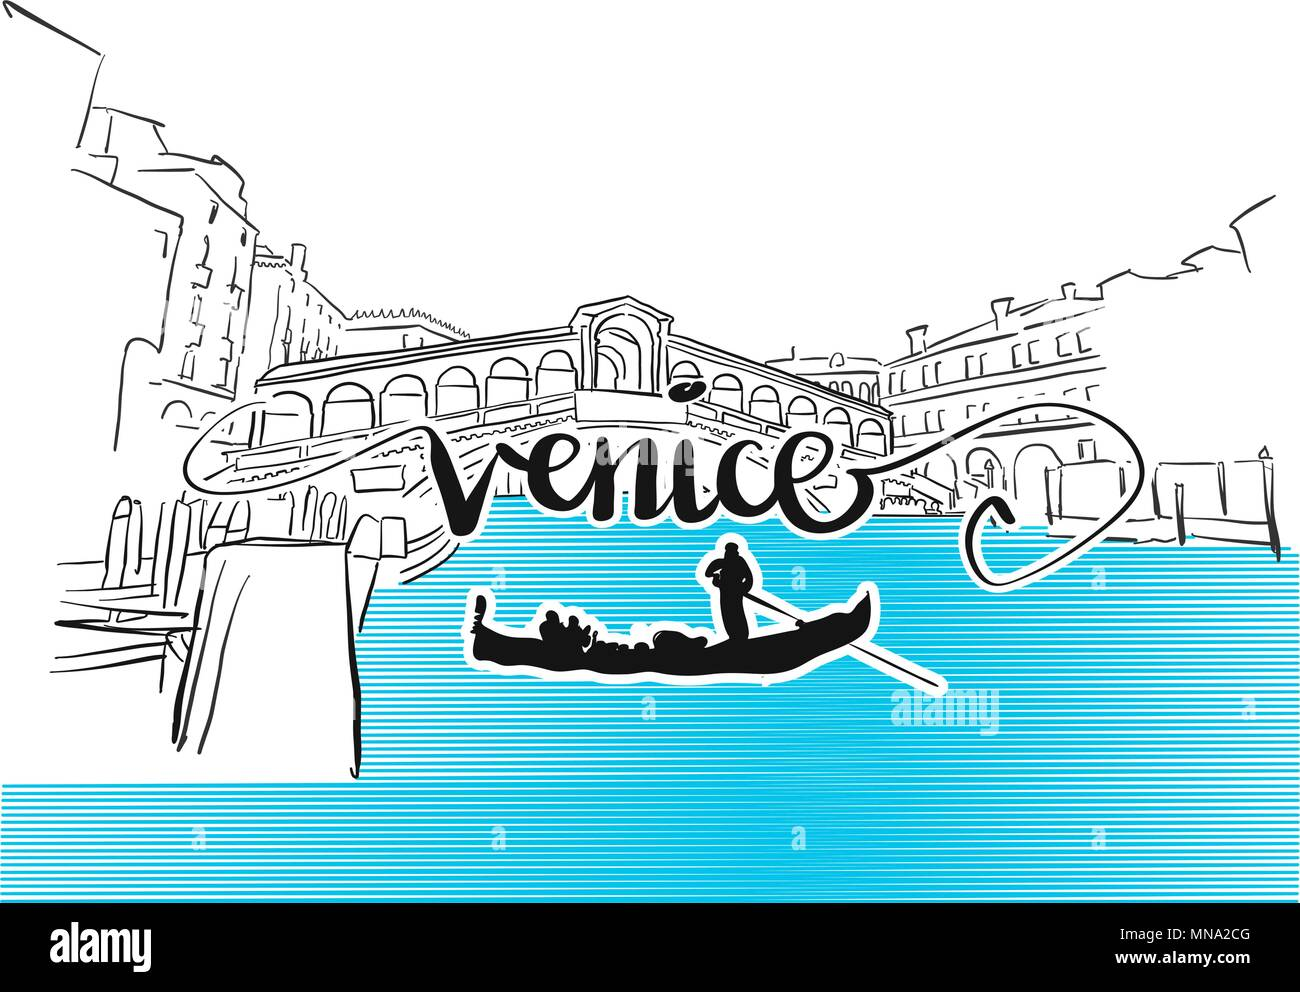 Famous Venice Rialto Bridge Greeting Card Design, Hand-drawn Vector Outline Artwork Illustration - Stock Vector